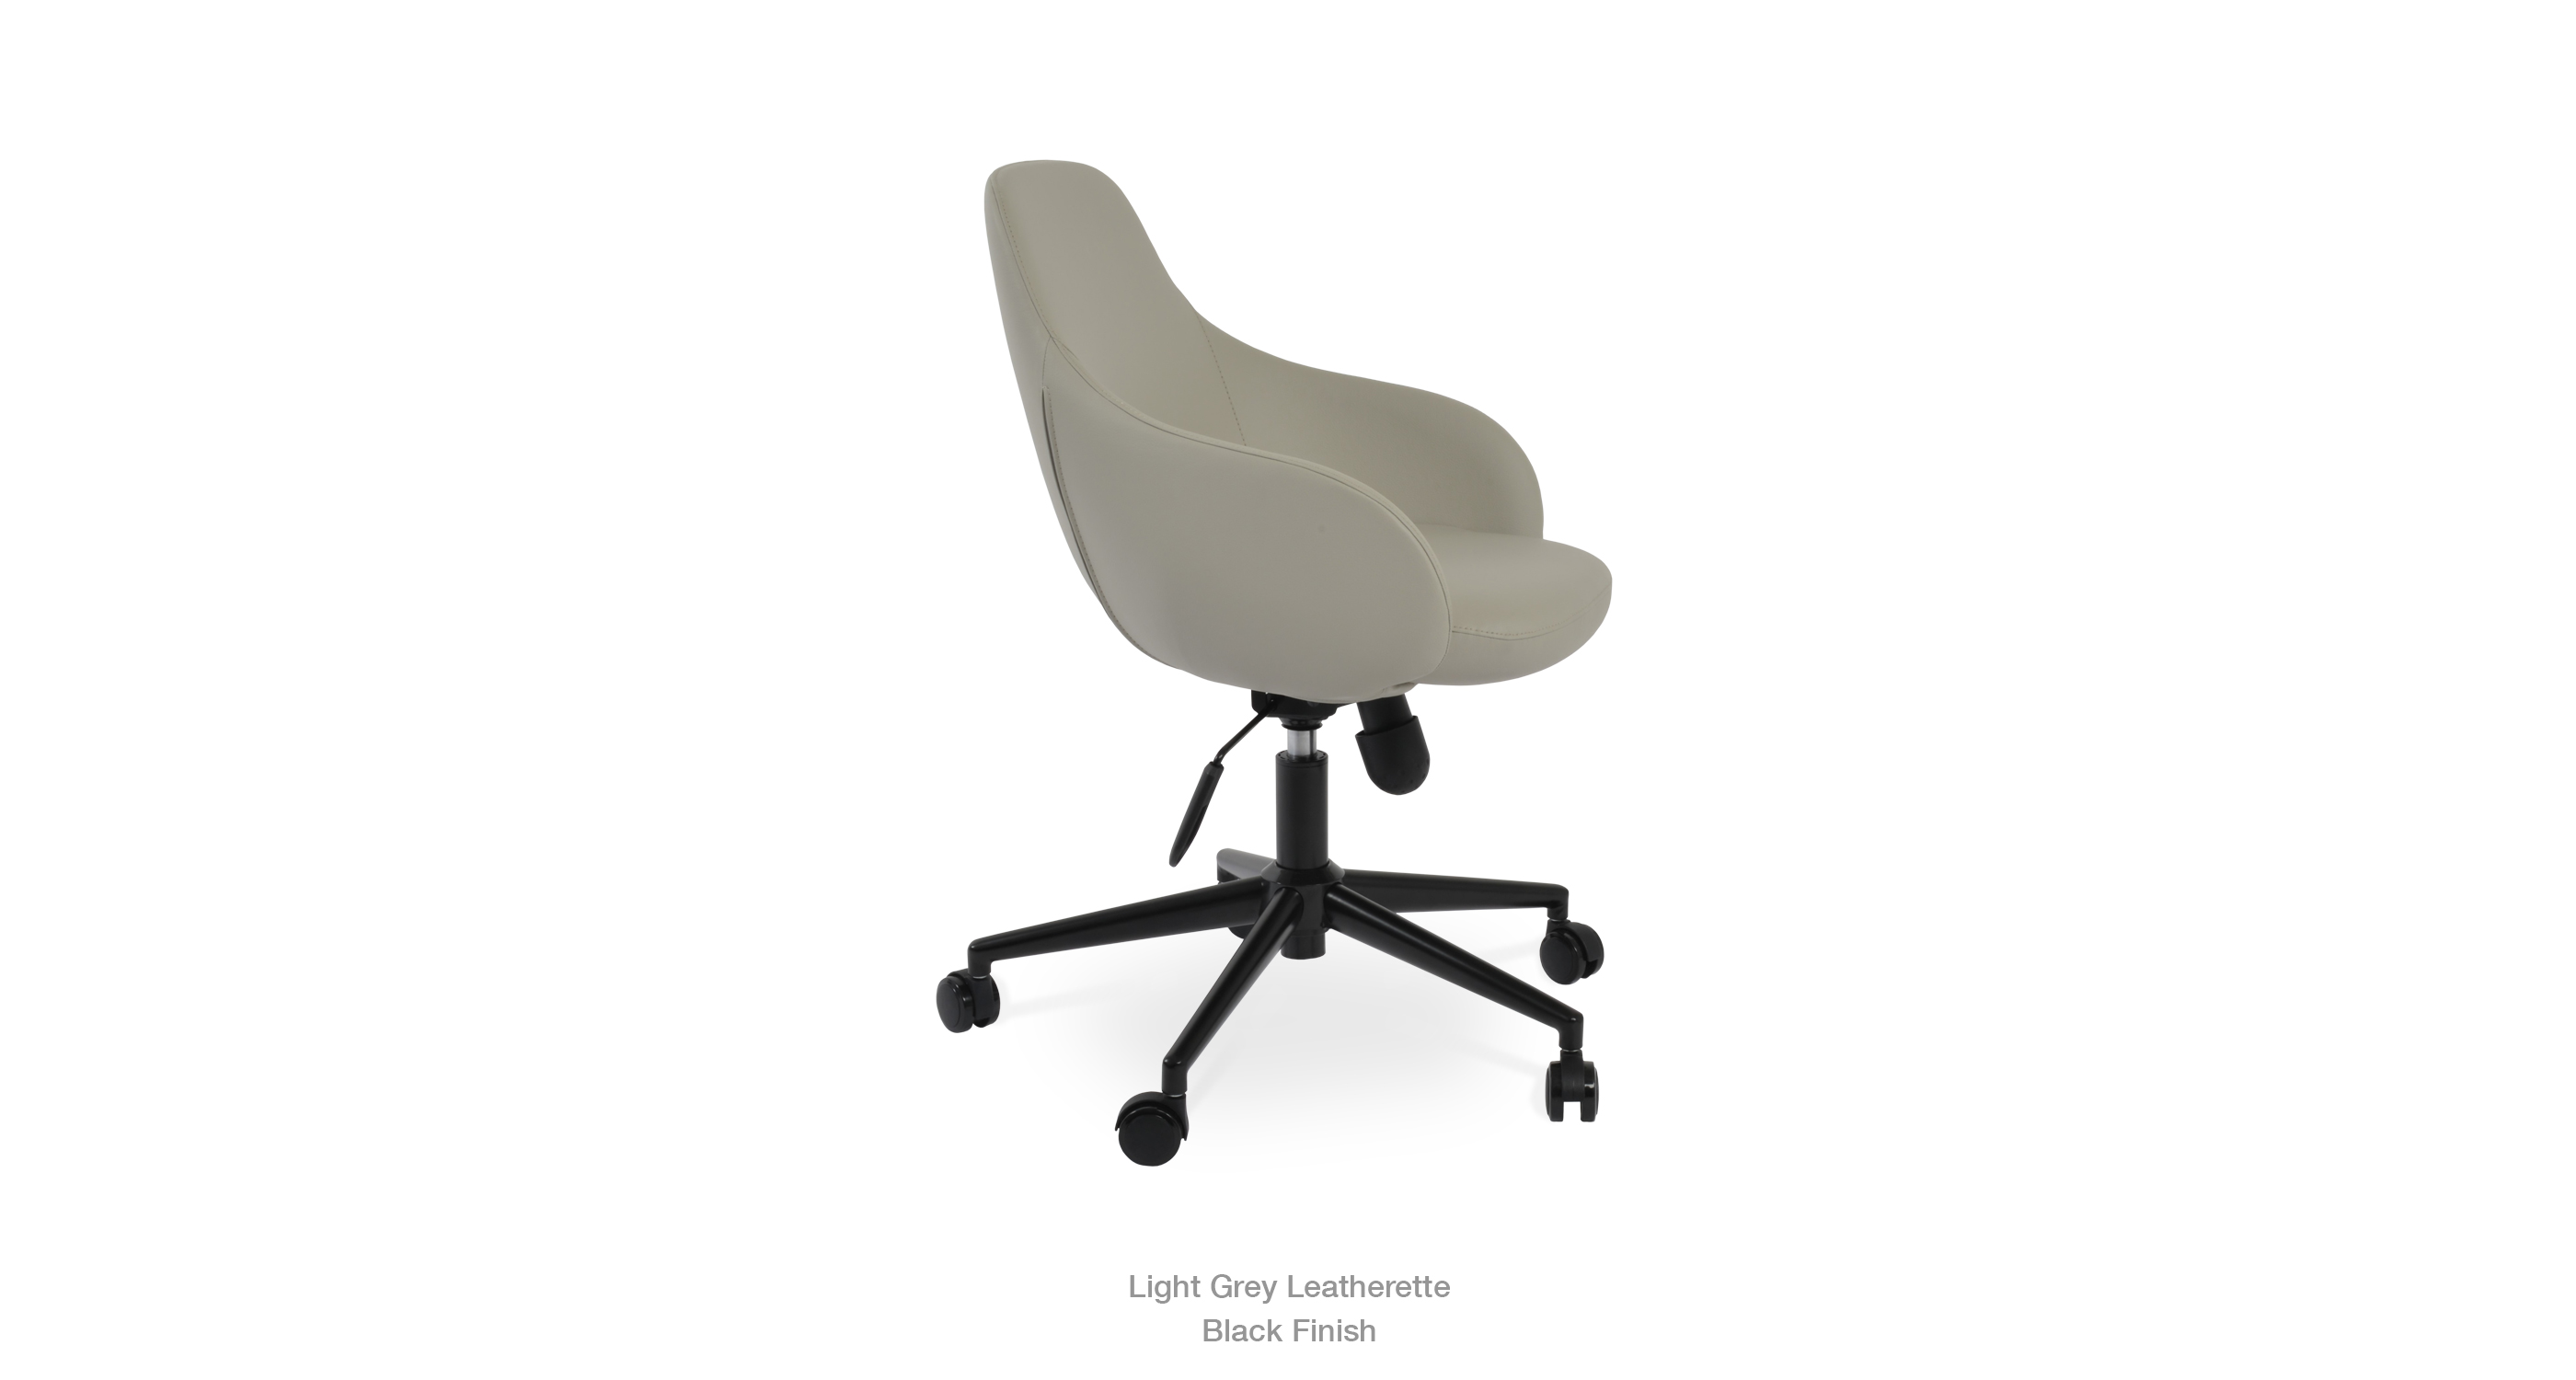 light grey leatherette - black finish